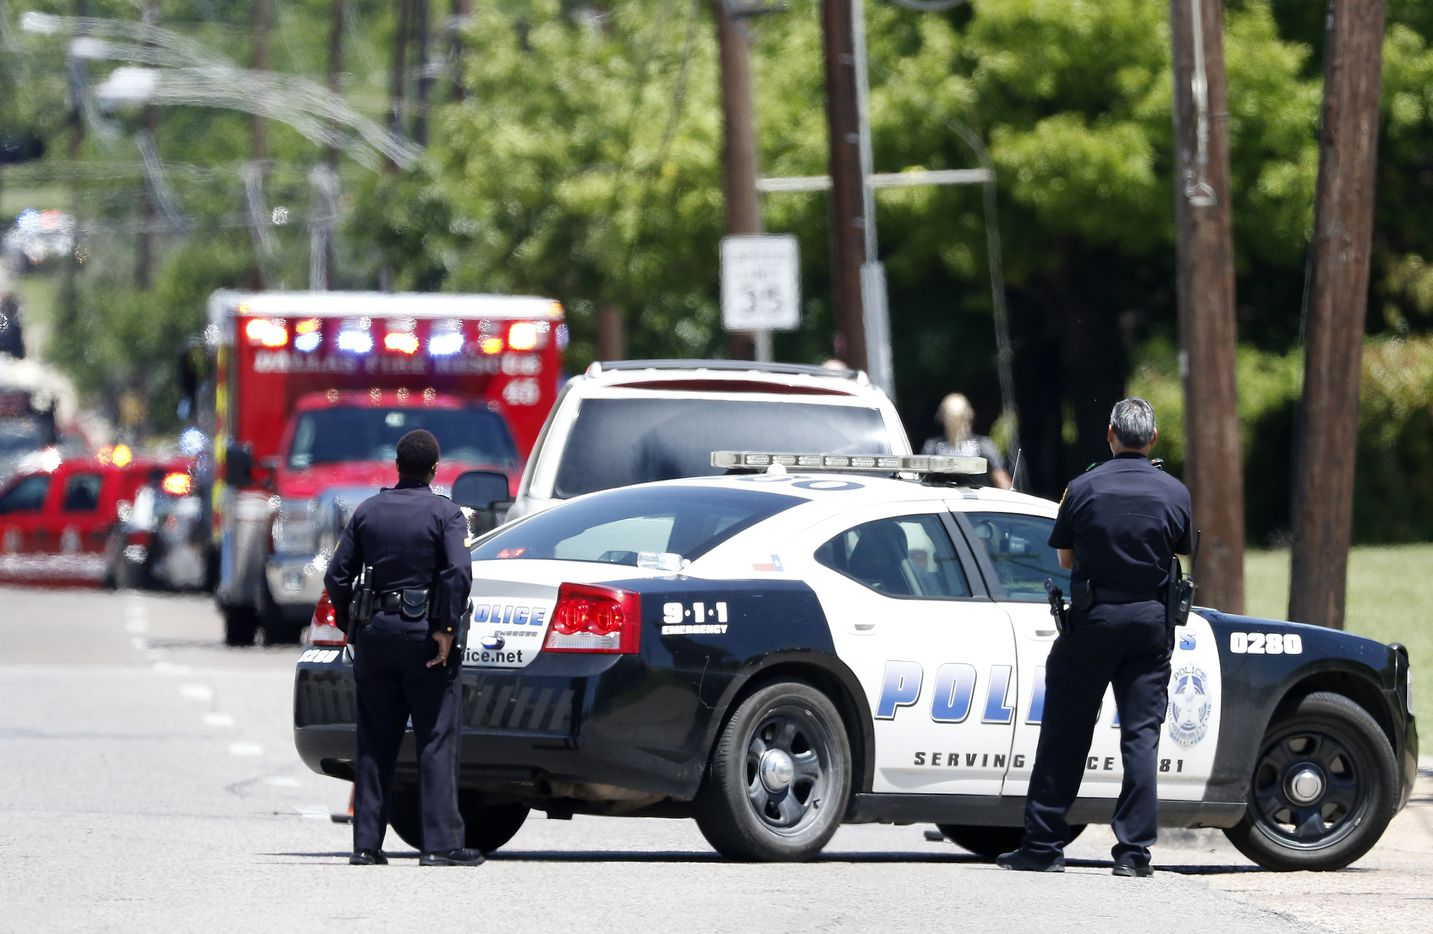 Dallas Police Officers work on the active shooting scene on Dolphin Road in Dallas, Monday, May 1, 2017. (Jae S. Lee/The Dallas Morning News)